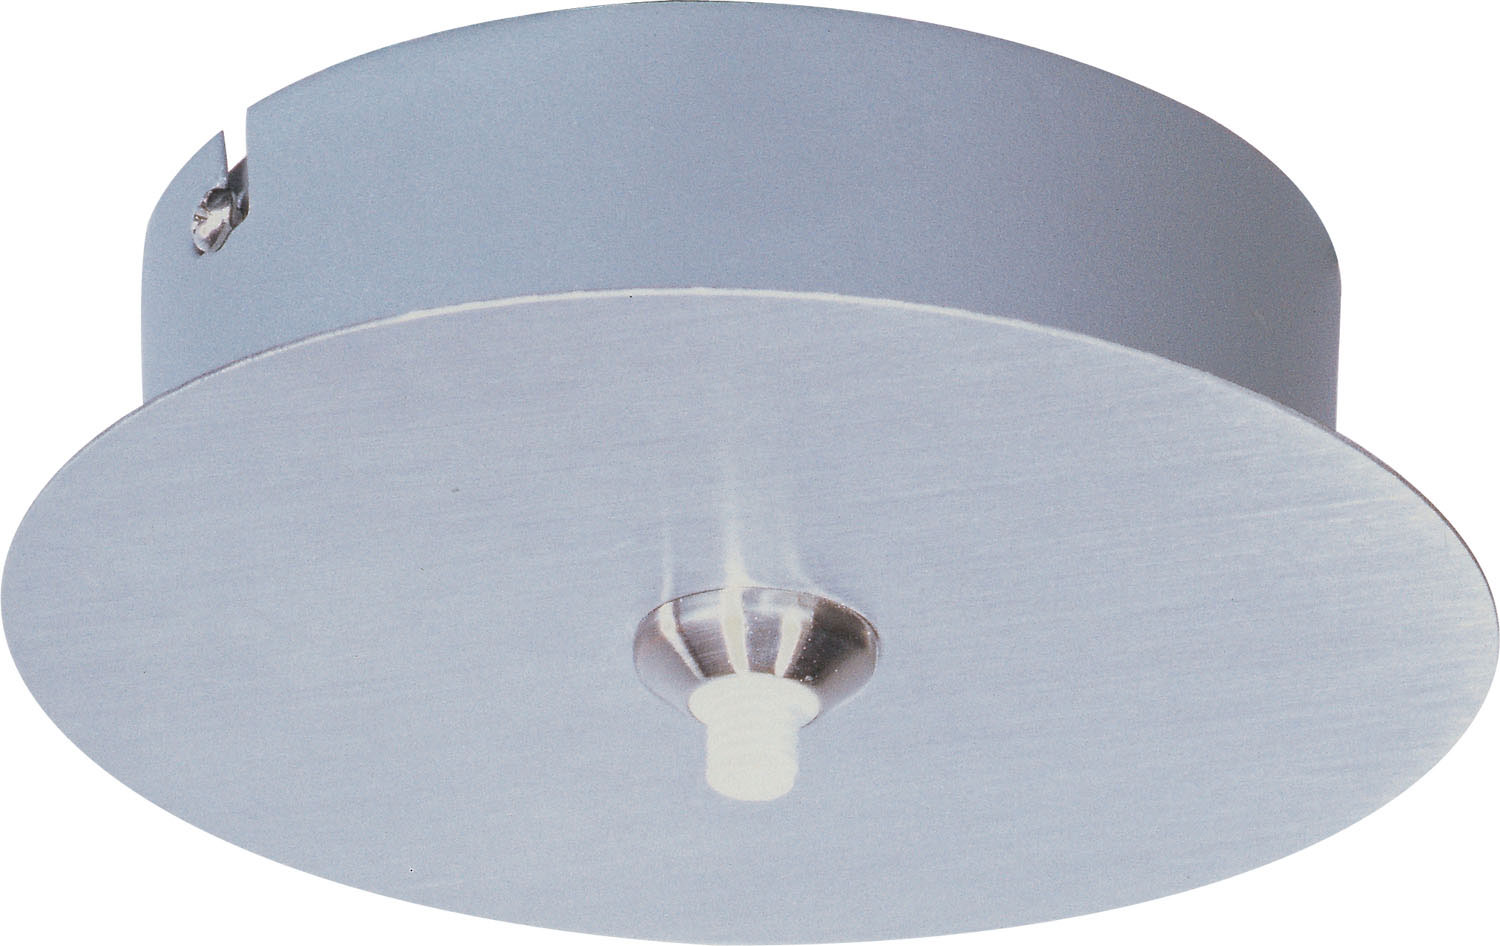 Canopy from the RapidJack Xenon collection by ET2 EC95001 SN